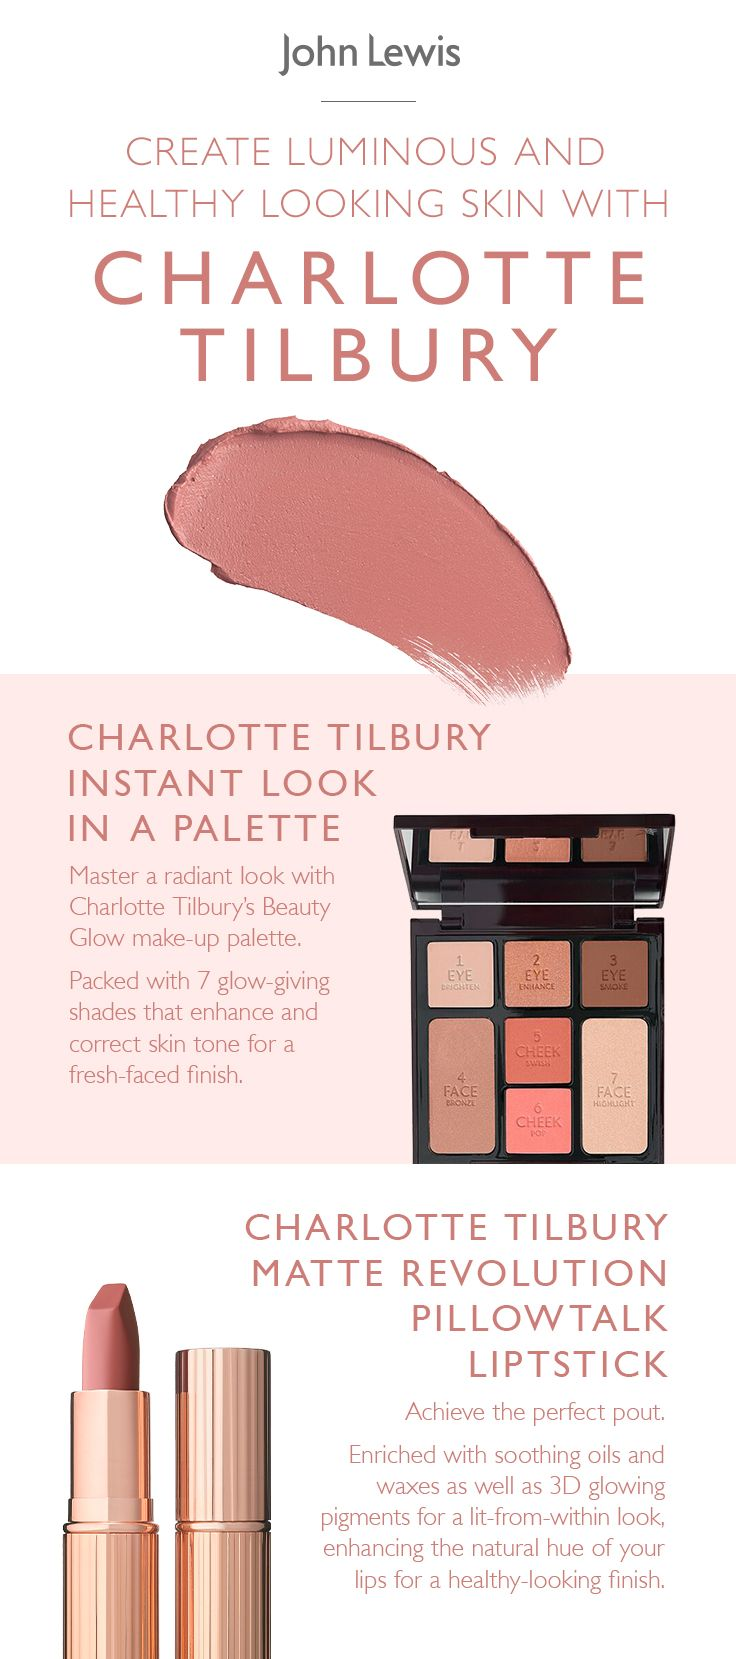 Create luminous, healthy-looking skin with light, hydrating make-up. Master a radiant look with Charlotte Tilbury's Beauty Glow make-up palette. Packed with 7 glow-giving shades that enhance and correct skin tone for a fresh-faced finish. Achieve the perfect pout with Charlotte Tilbury's Pillow Talk lipstick. Enriched with soothing oils and waxes as well as 3D glowing pigments for a lit-from-within look, it enhances the natural hue of your lips for a healthy-looking finish.